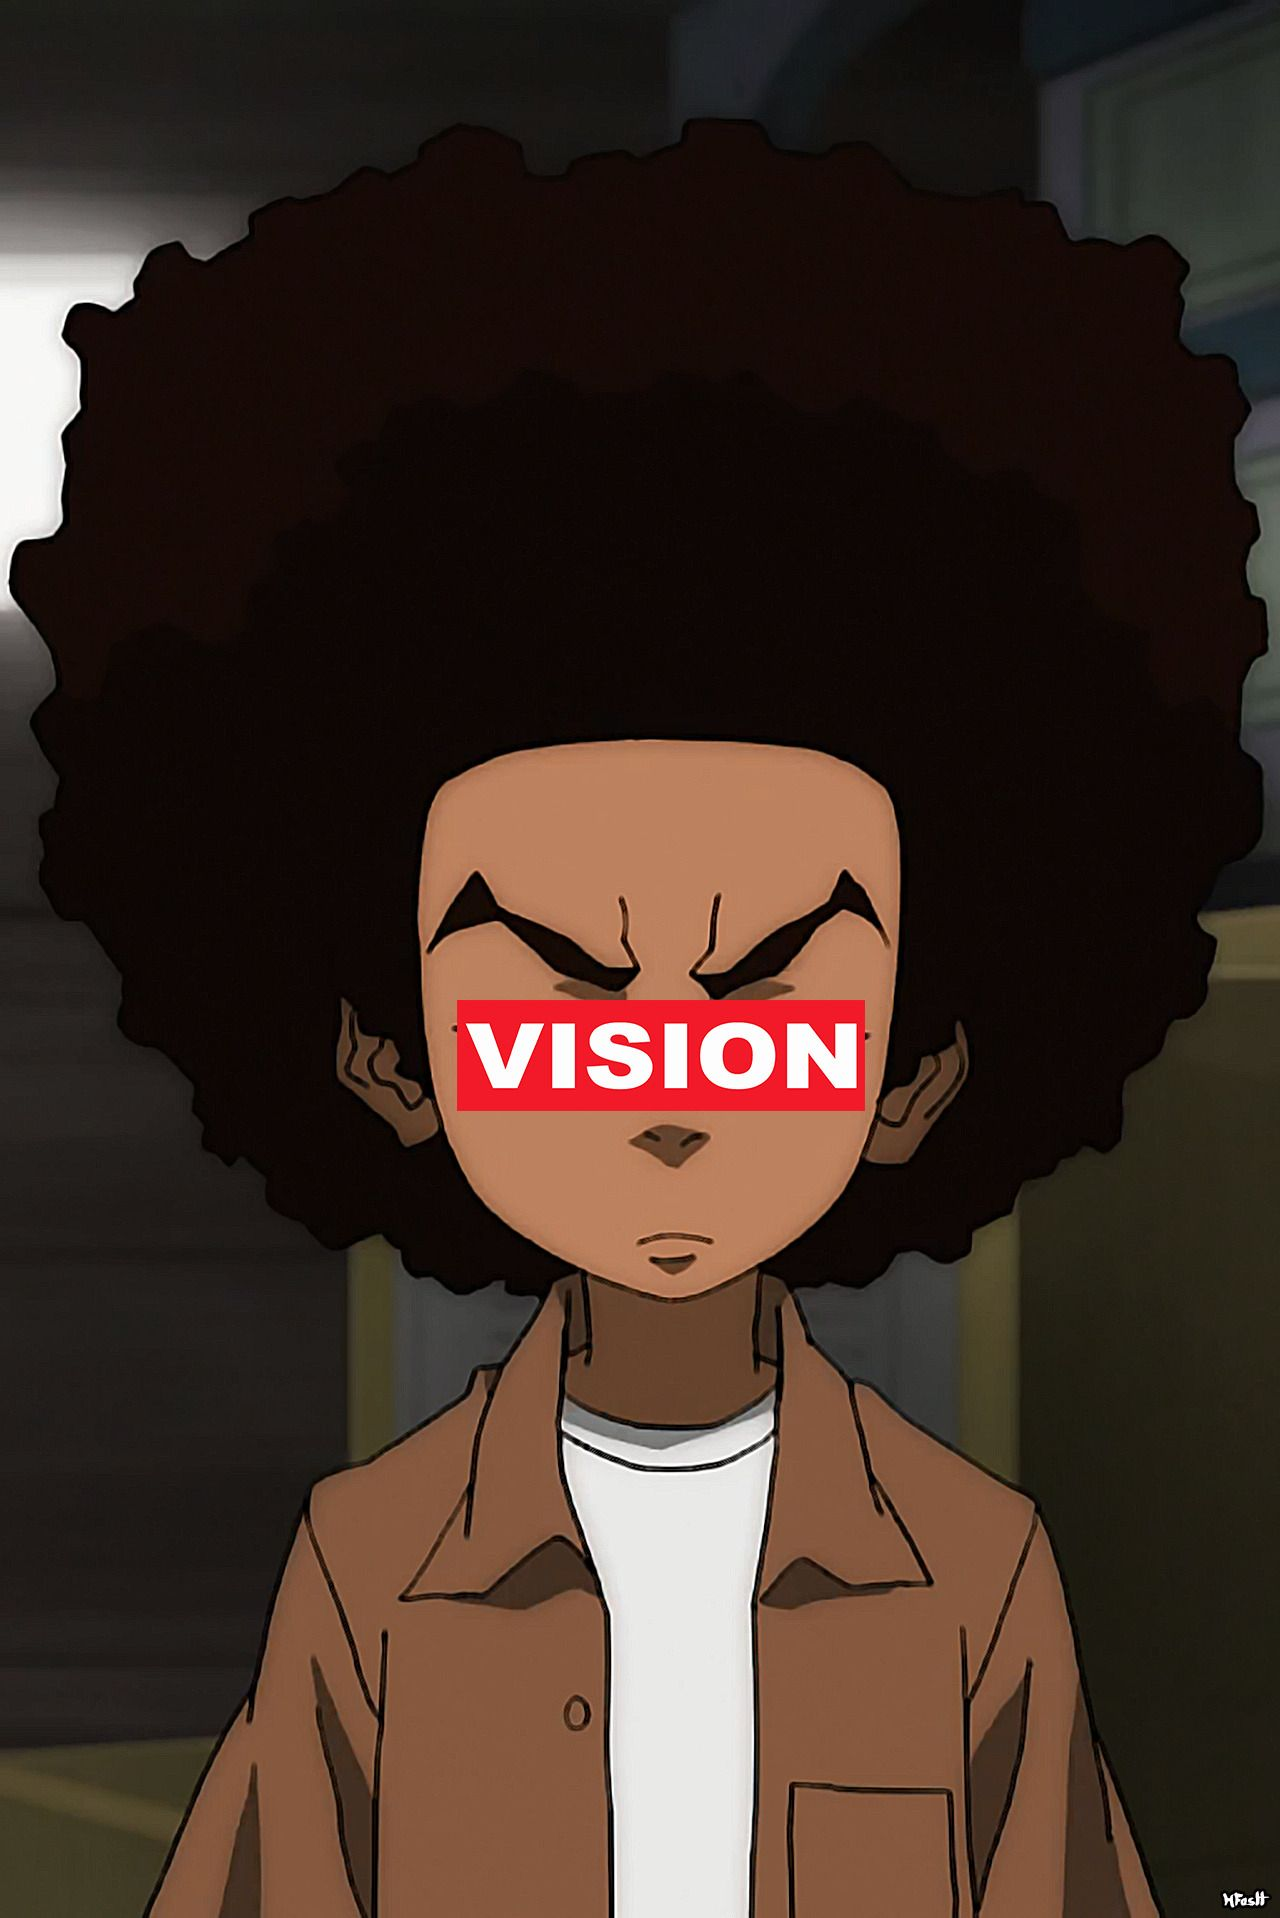 """Vision? What do you know about my vision? My vision would"